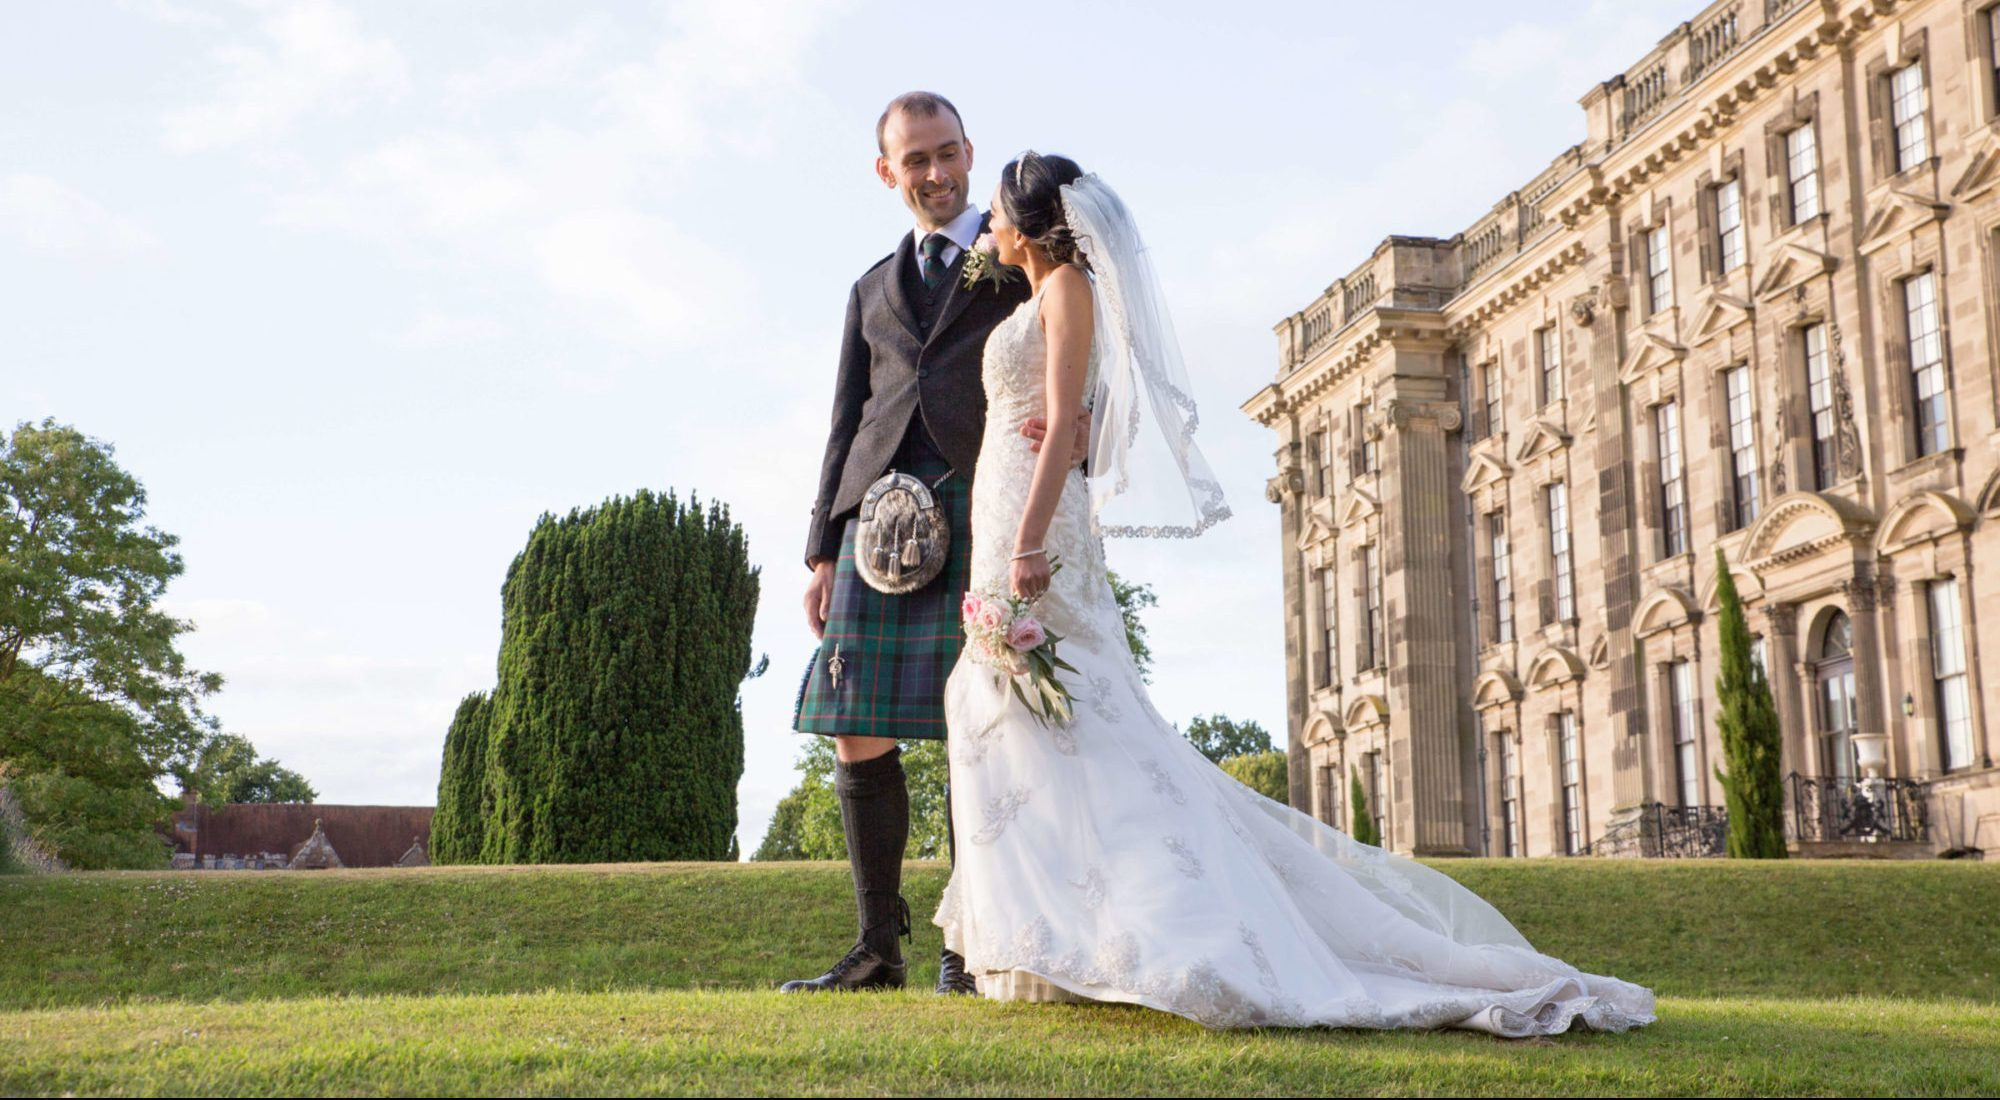 Suki & Oliver Wedding Photographs